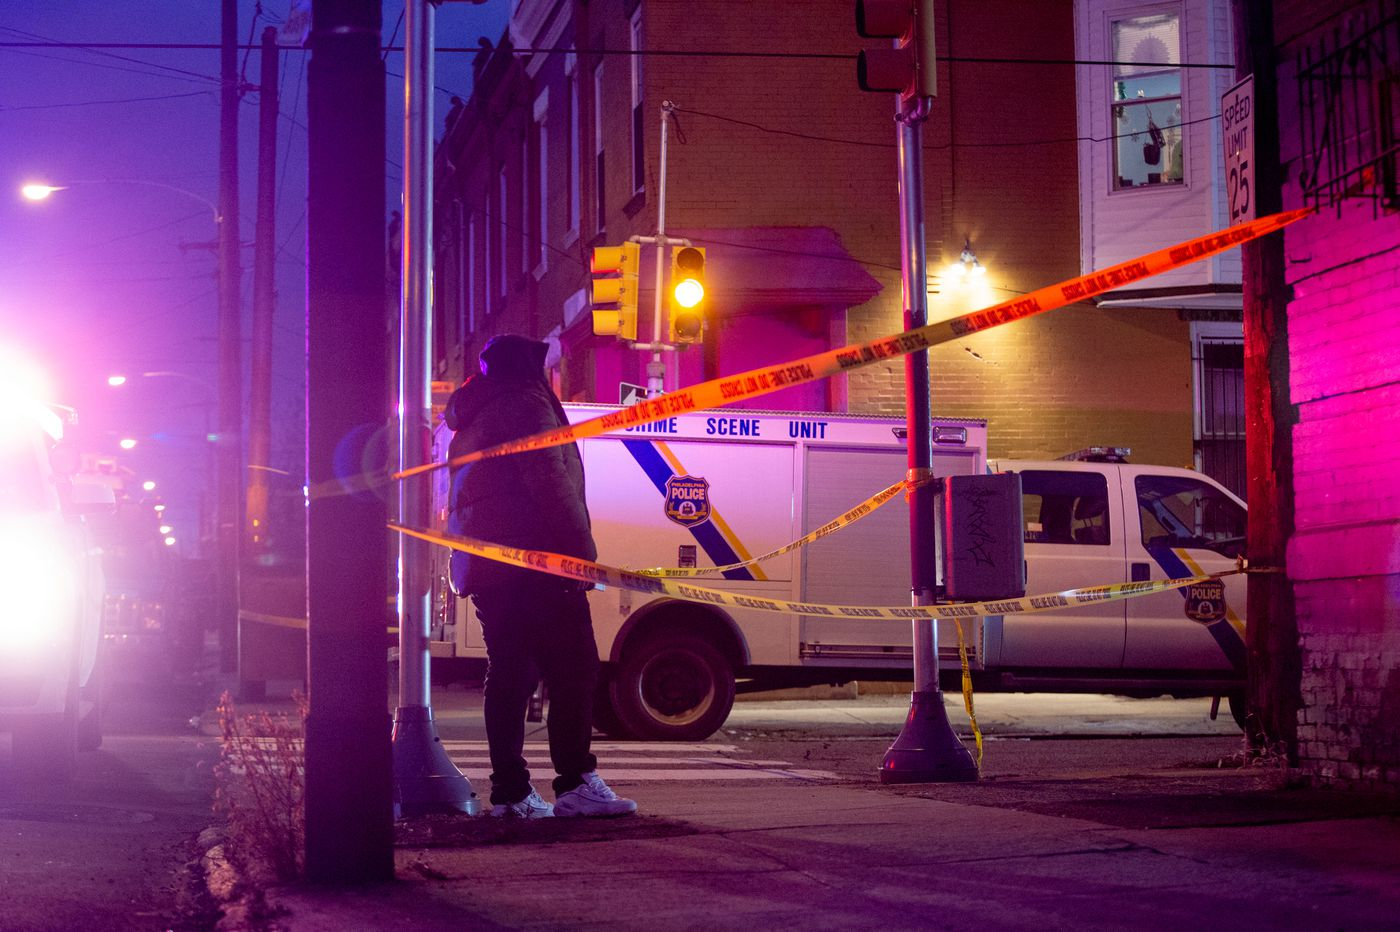 2018 Philly's final, bloody weekend: 3 slain, 15 more shot